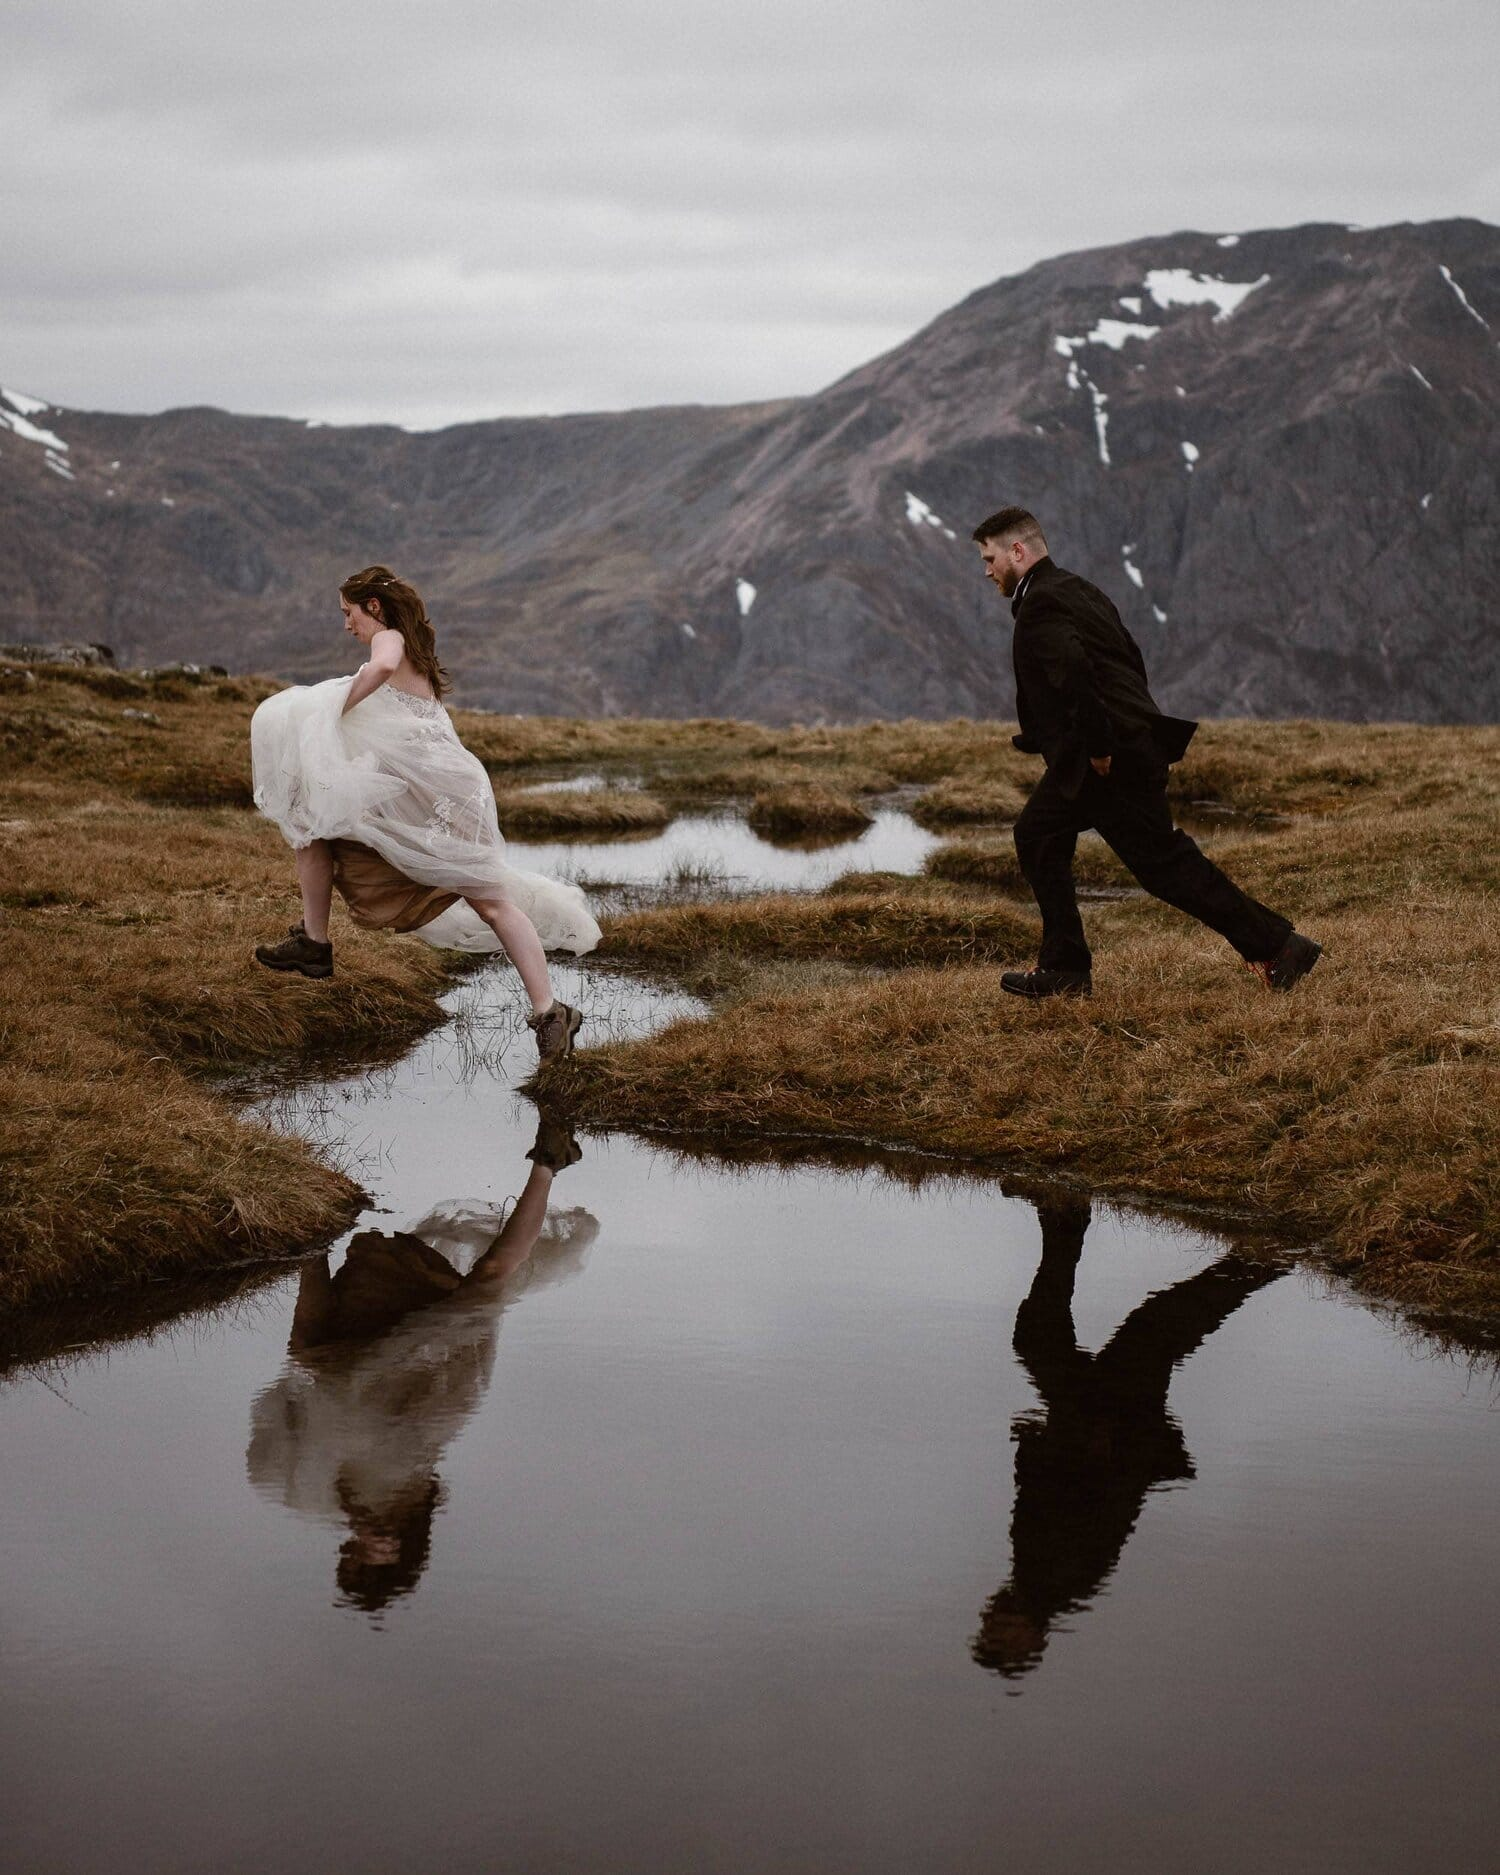 Bride and groom leap over a stream on their wedding day.